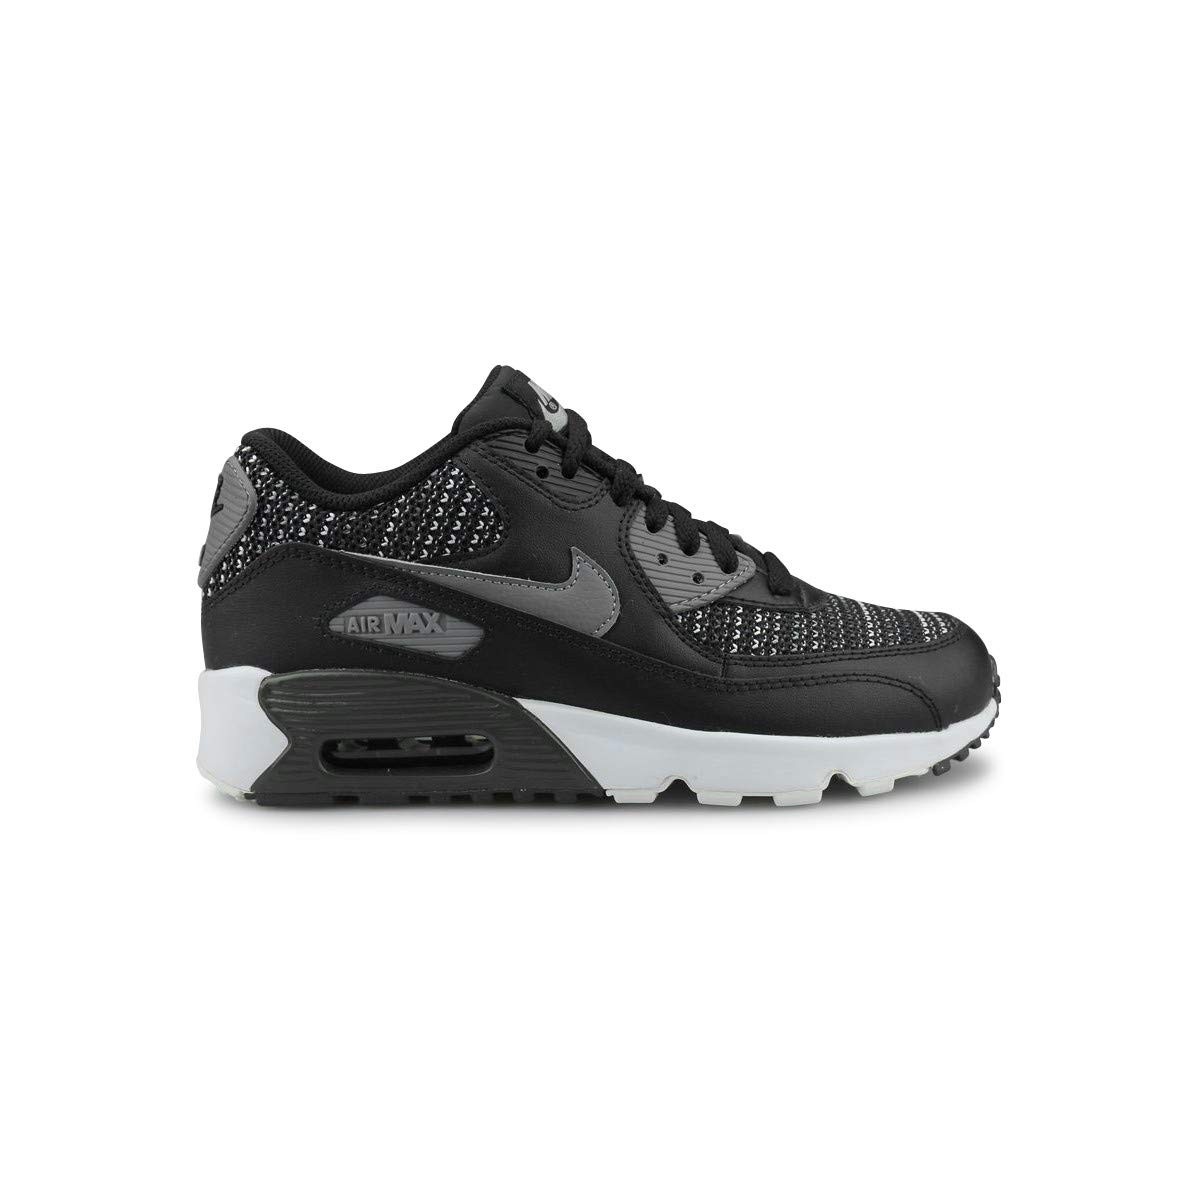 premium selection 2f28e 40fd3 NIKE Men s Air Max 90 Mesh Se (gs) Low-Top Sneakers, Multicolour  (Black Cool Anthracite Wolf Grey 001), 5.5 UK  Amazon.co.uk  Shoes   Bags